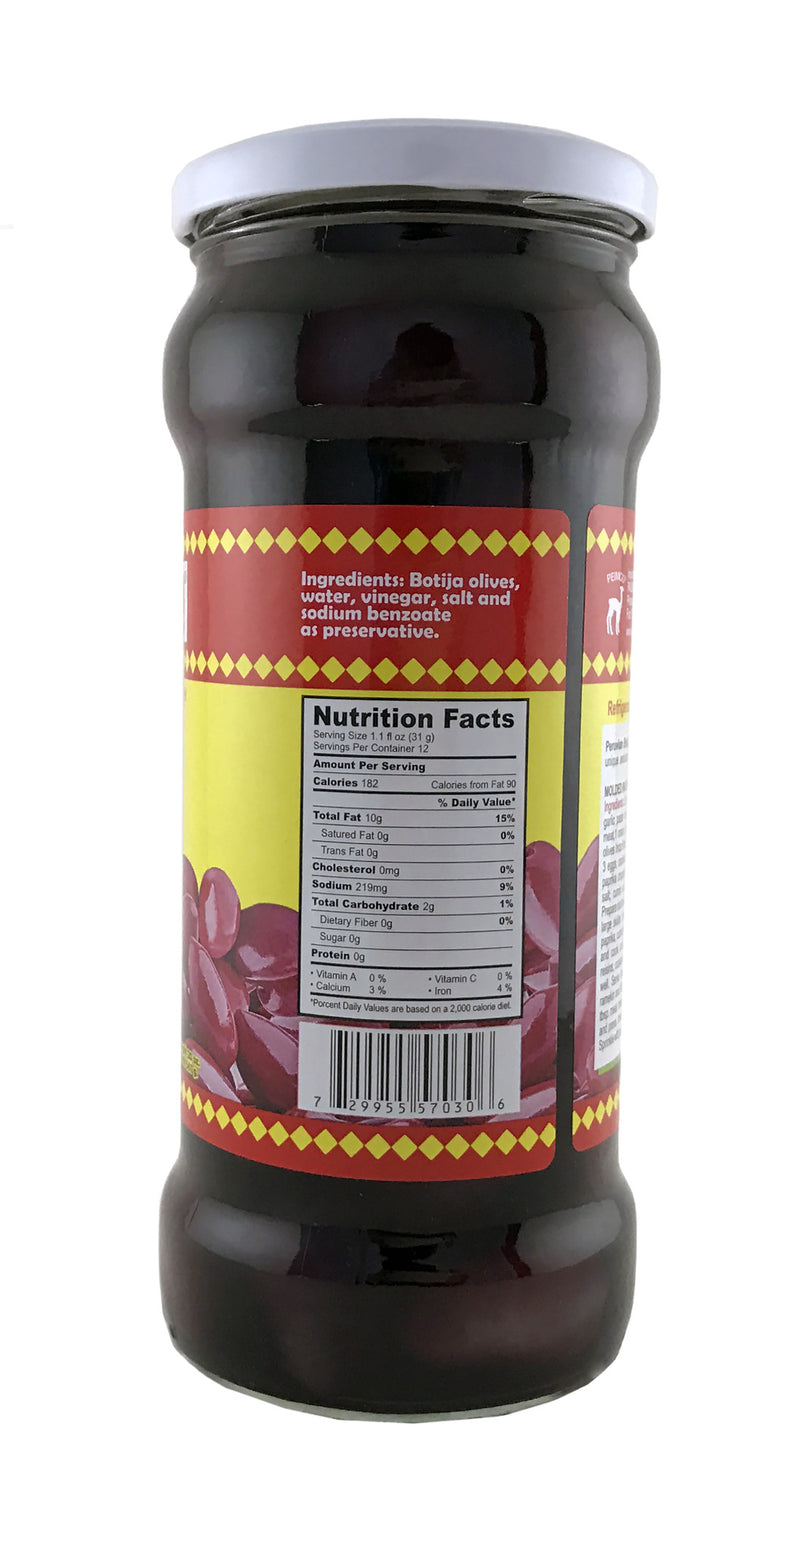 Inca's Food Botija Black Olives 20 oz.